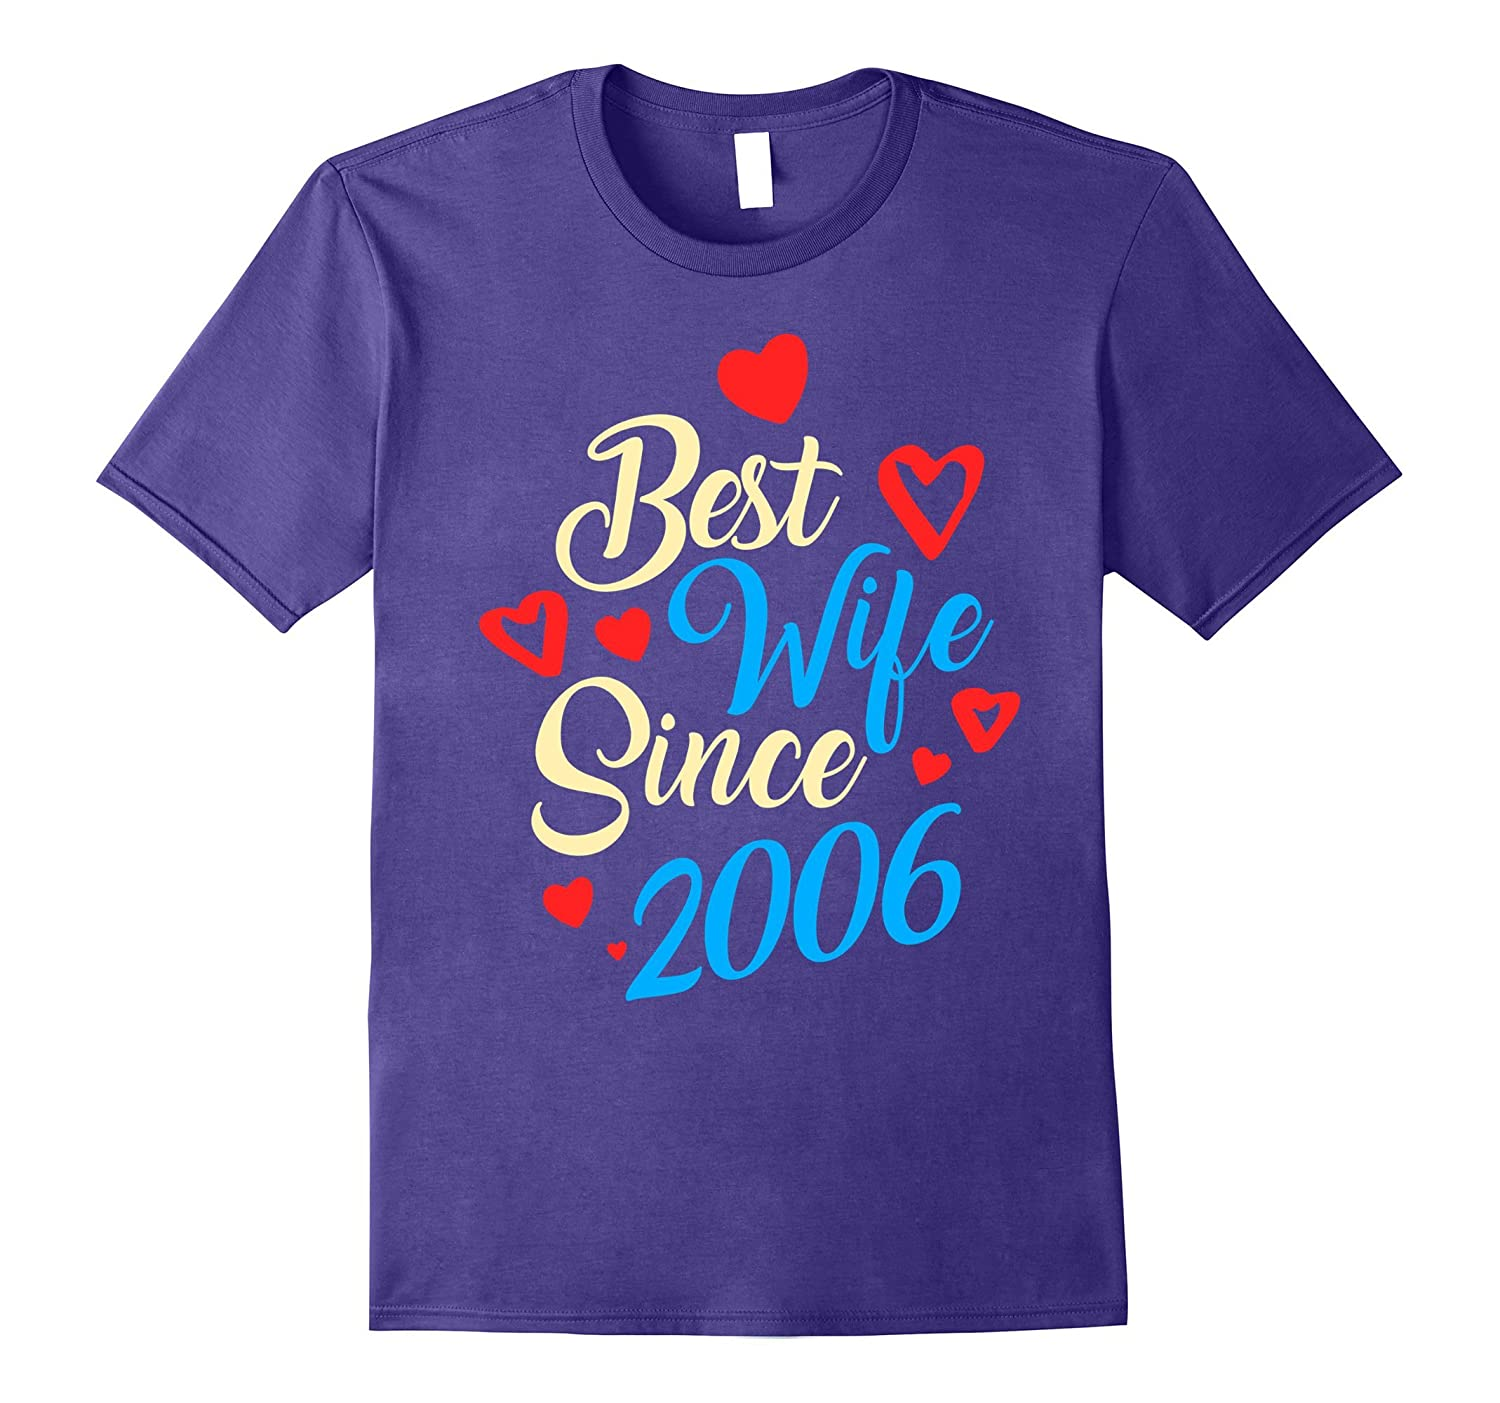 11th Wedding Anniversary Gifts 11 Best Wife Since 2006-T-Shirt